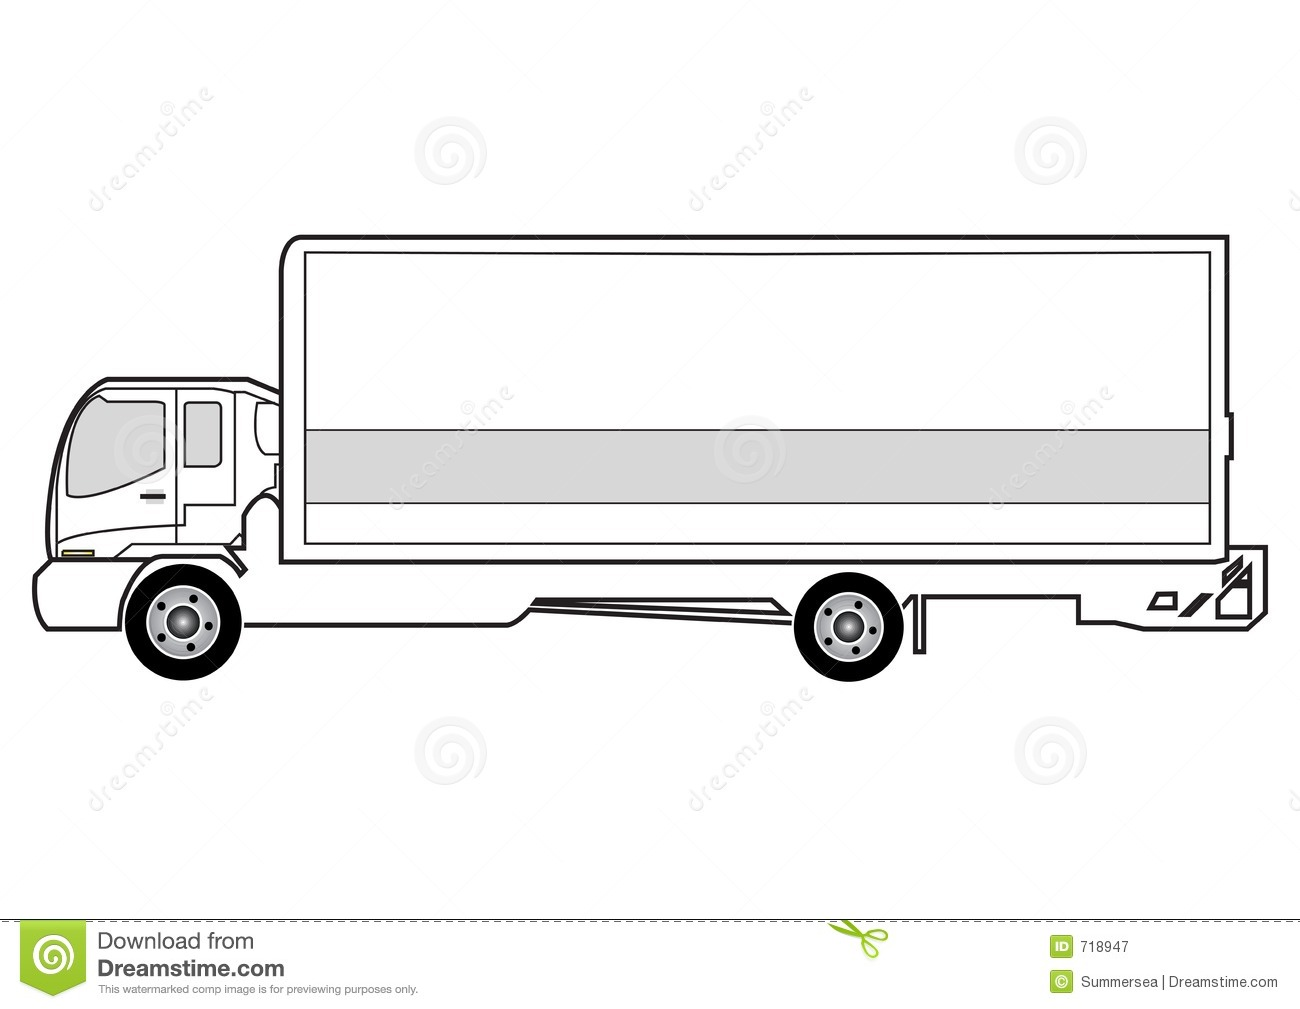 Line Art Truck : Line art truck royalty free stock photography image